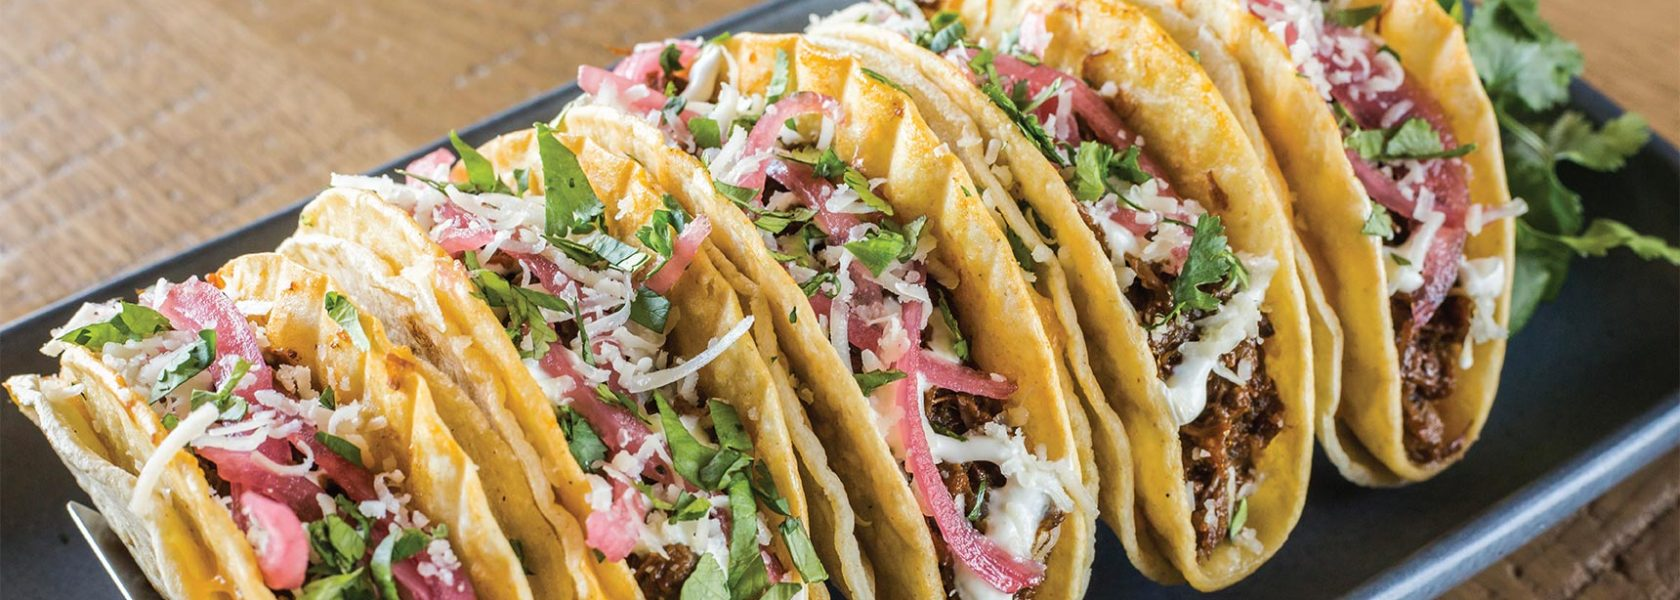 Row of fresh tacos standing side by side